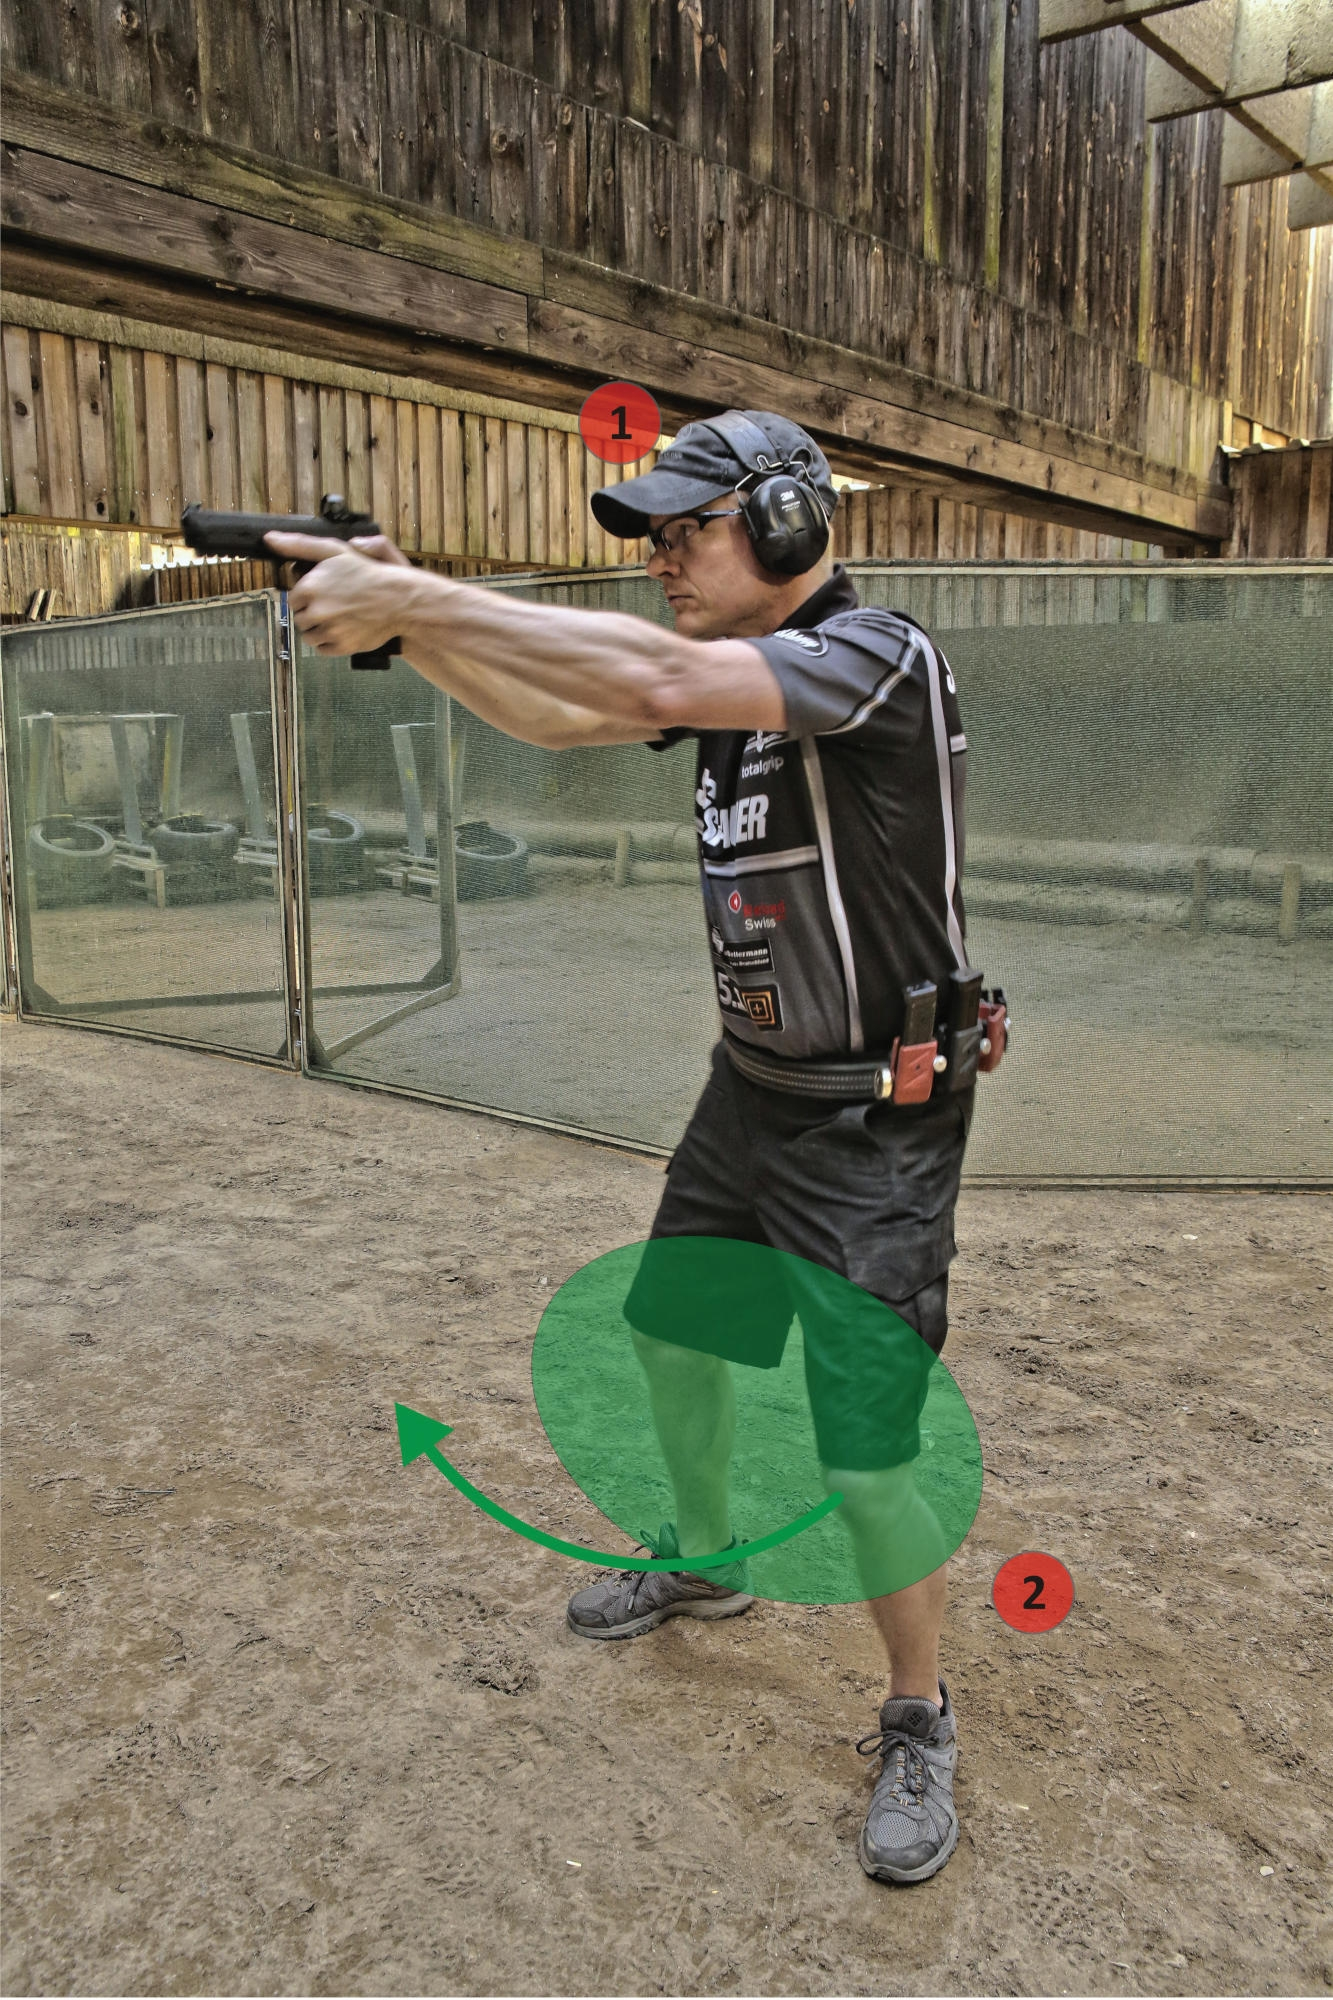 Dynamic handgun shooting and IPSC shooting techniques: target transition